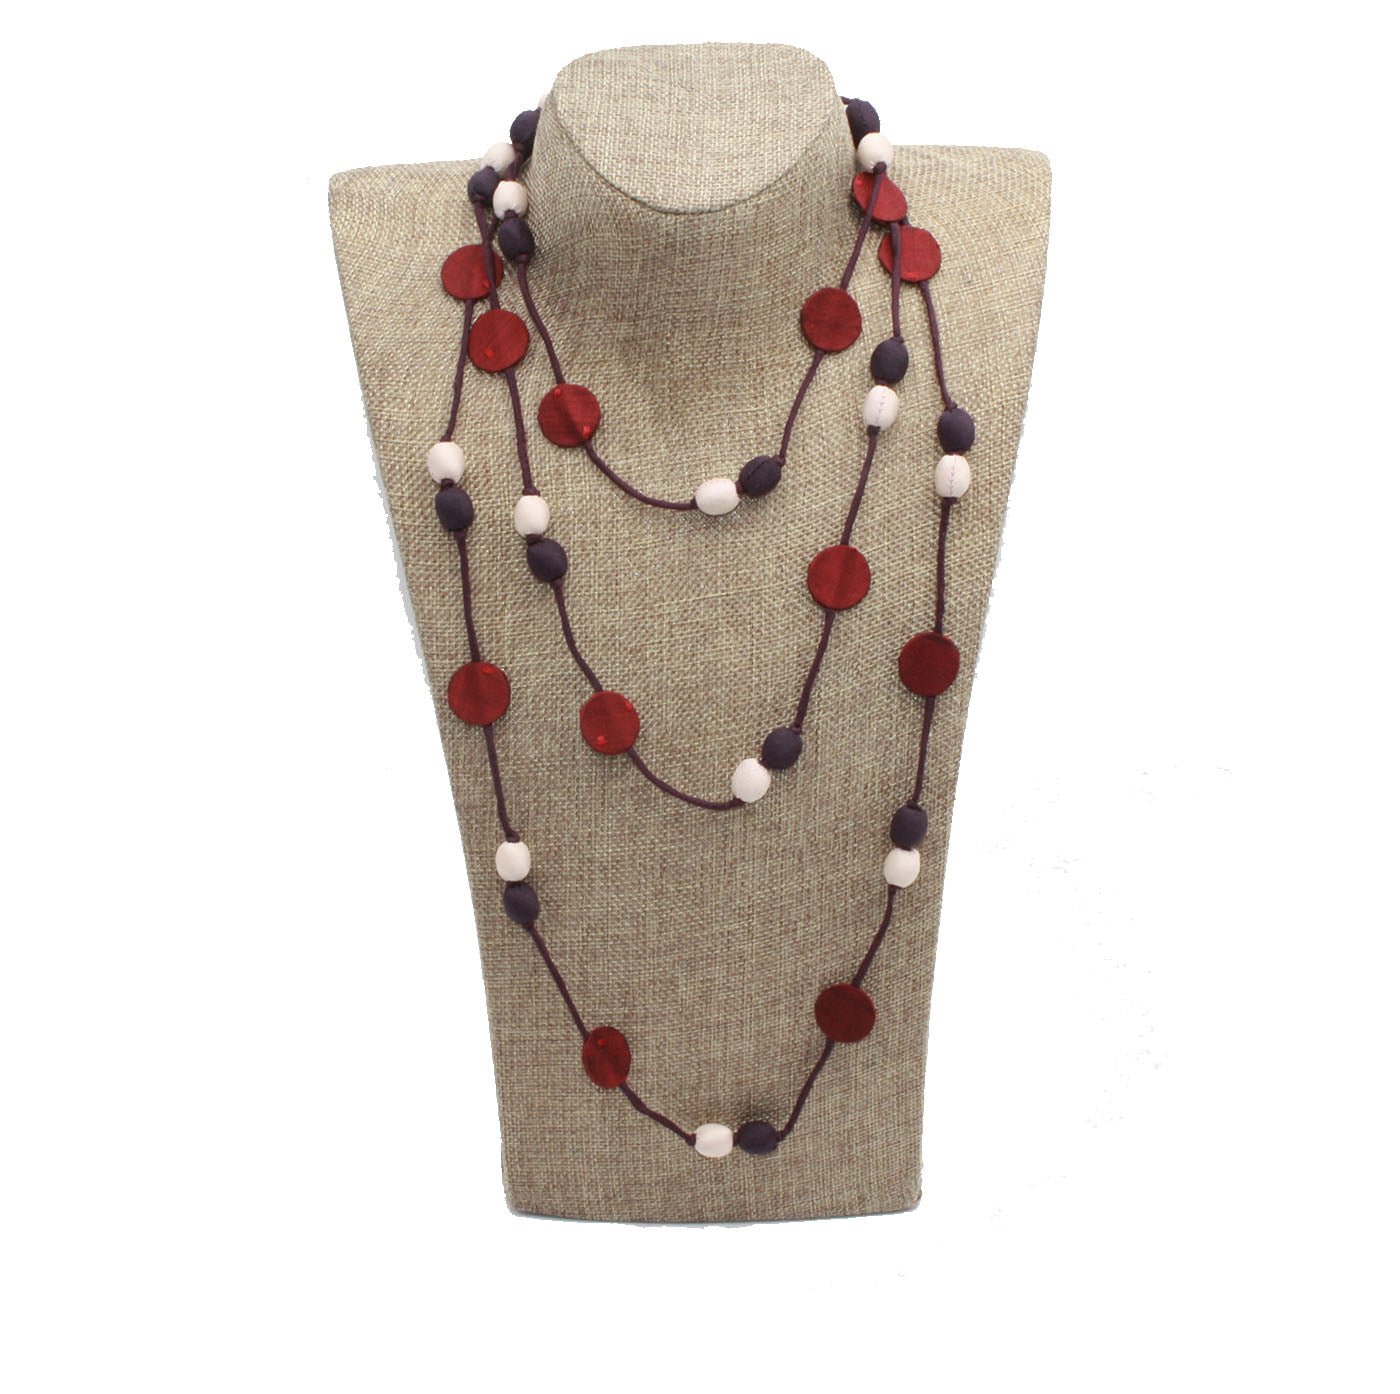 hand silk img mist buy wandering grey at online white crafted necklace